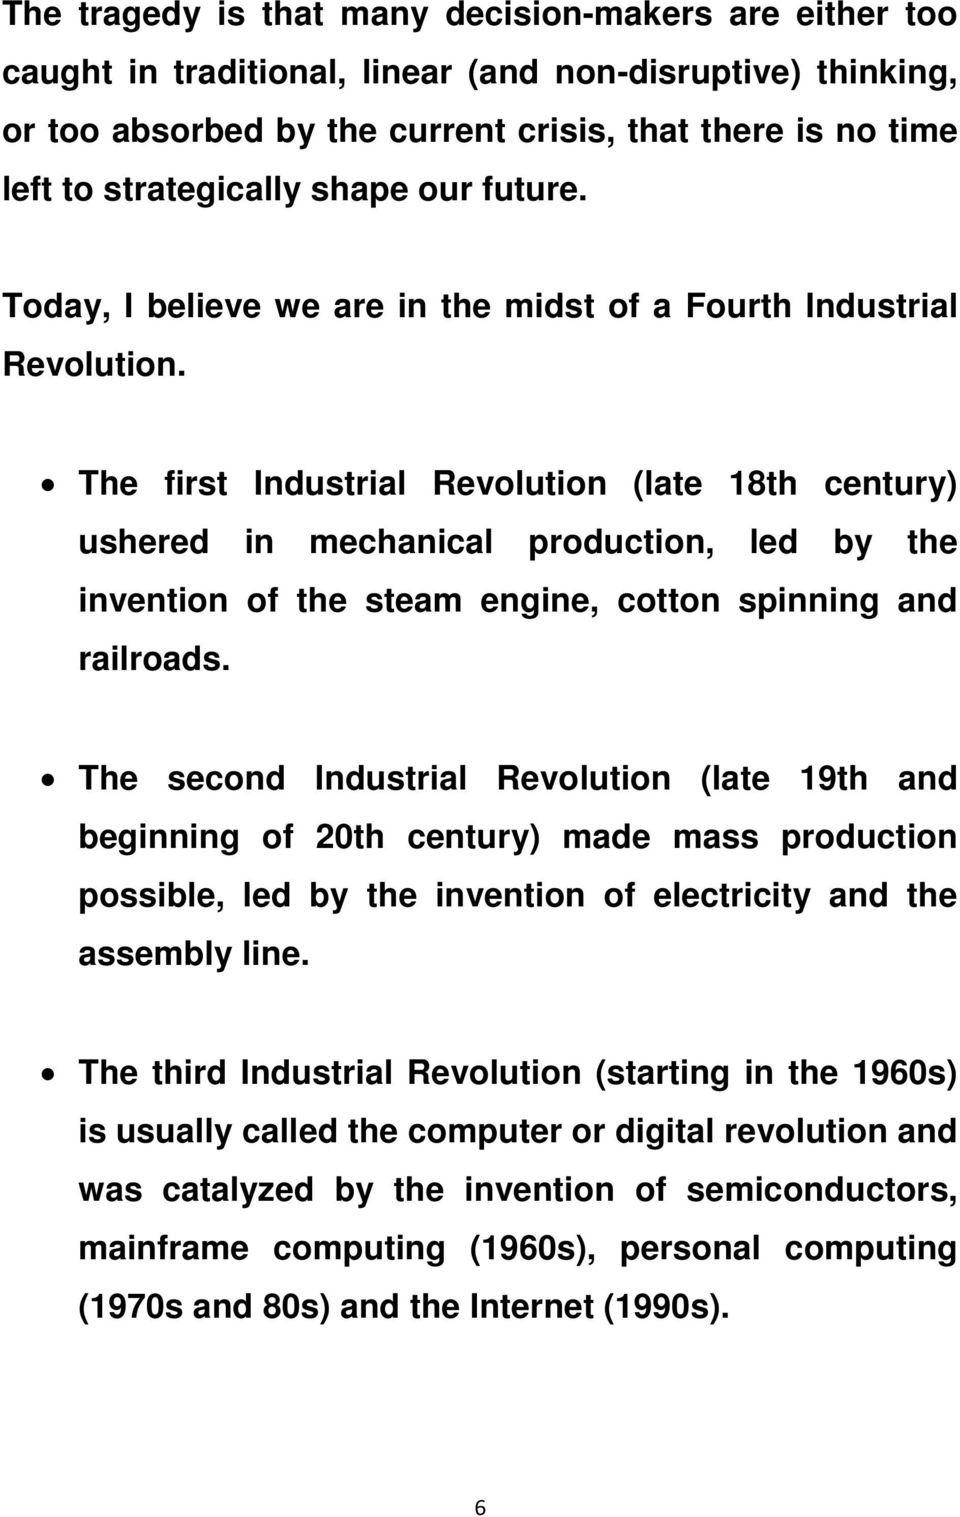 The first Industrial Revolution (late 18th century) ushered in mechanical production, led by the invention of the steam engine, cotton spinning and railroads.